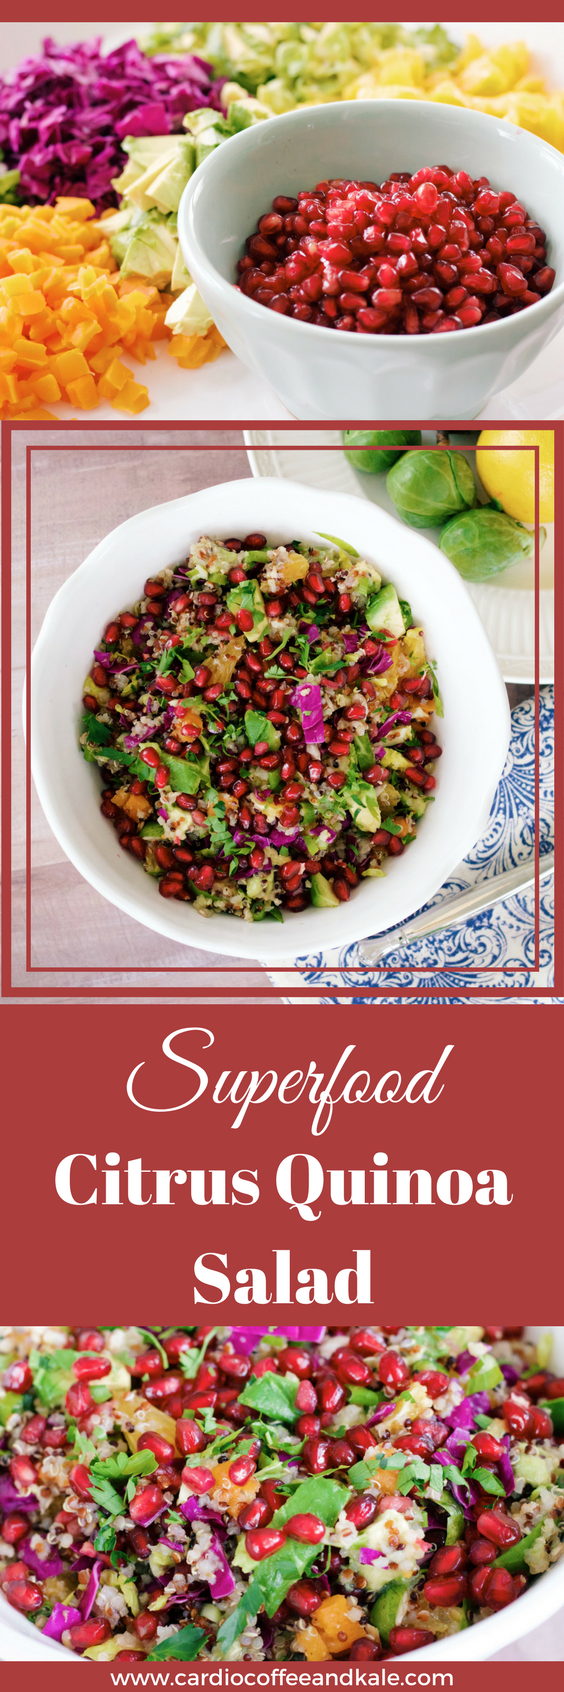 This salad is packed with superfoods and is one of my family's absolute favorites! The superfoods are loaded with tons of nutrients, antioxidants, anti-inflammatory properties,and heart healthy fats.It's a flavor explosion! It's a little savory, a little sweet, and even has some crunch...it's seriously delicious! WWW.CARDIOCOFFEEANDKALE.COM